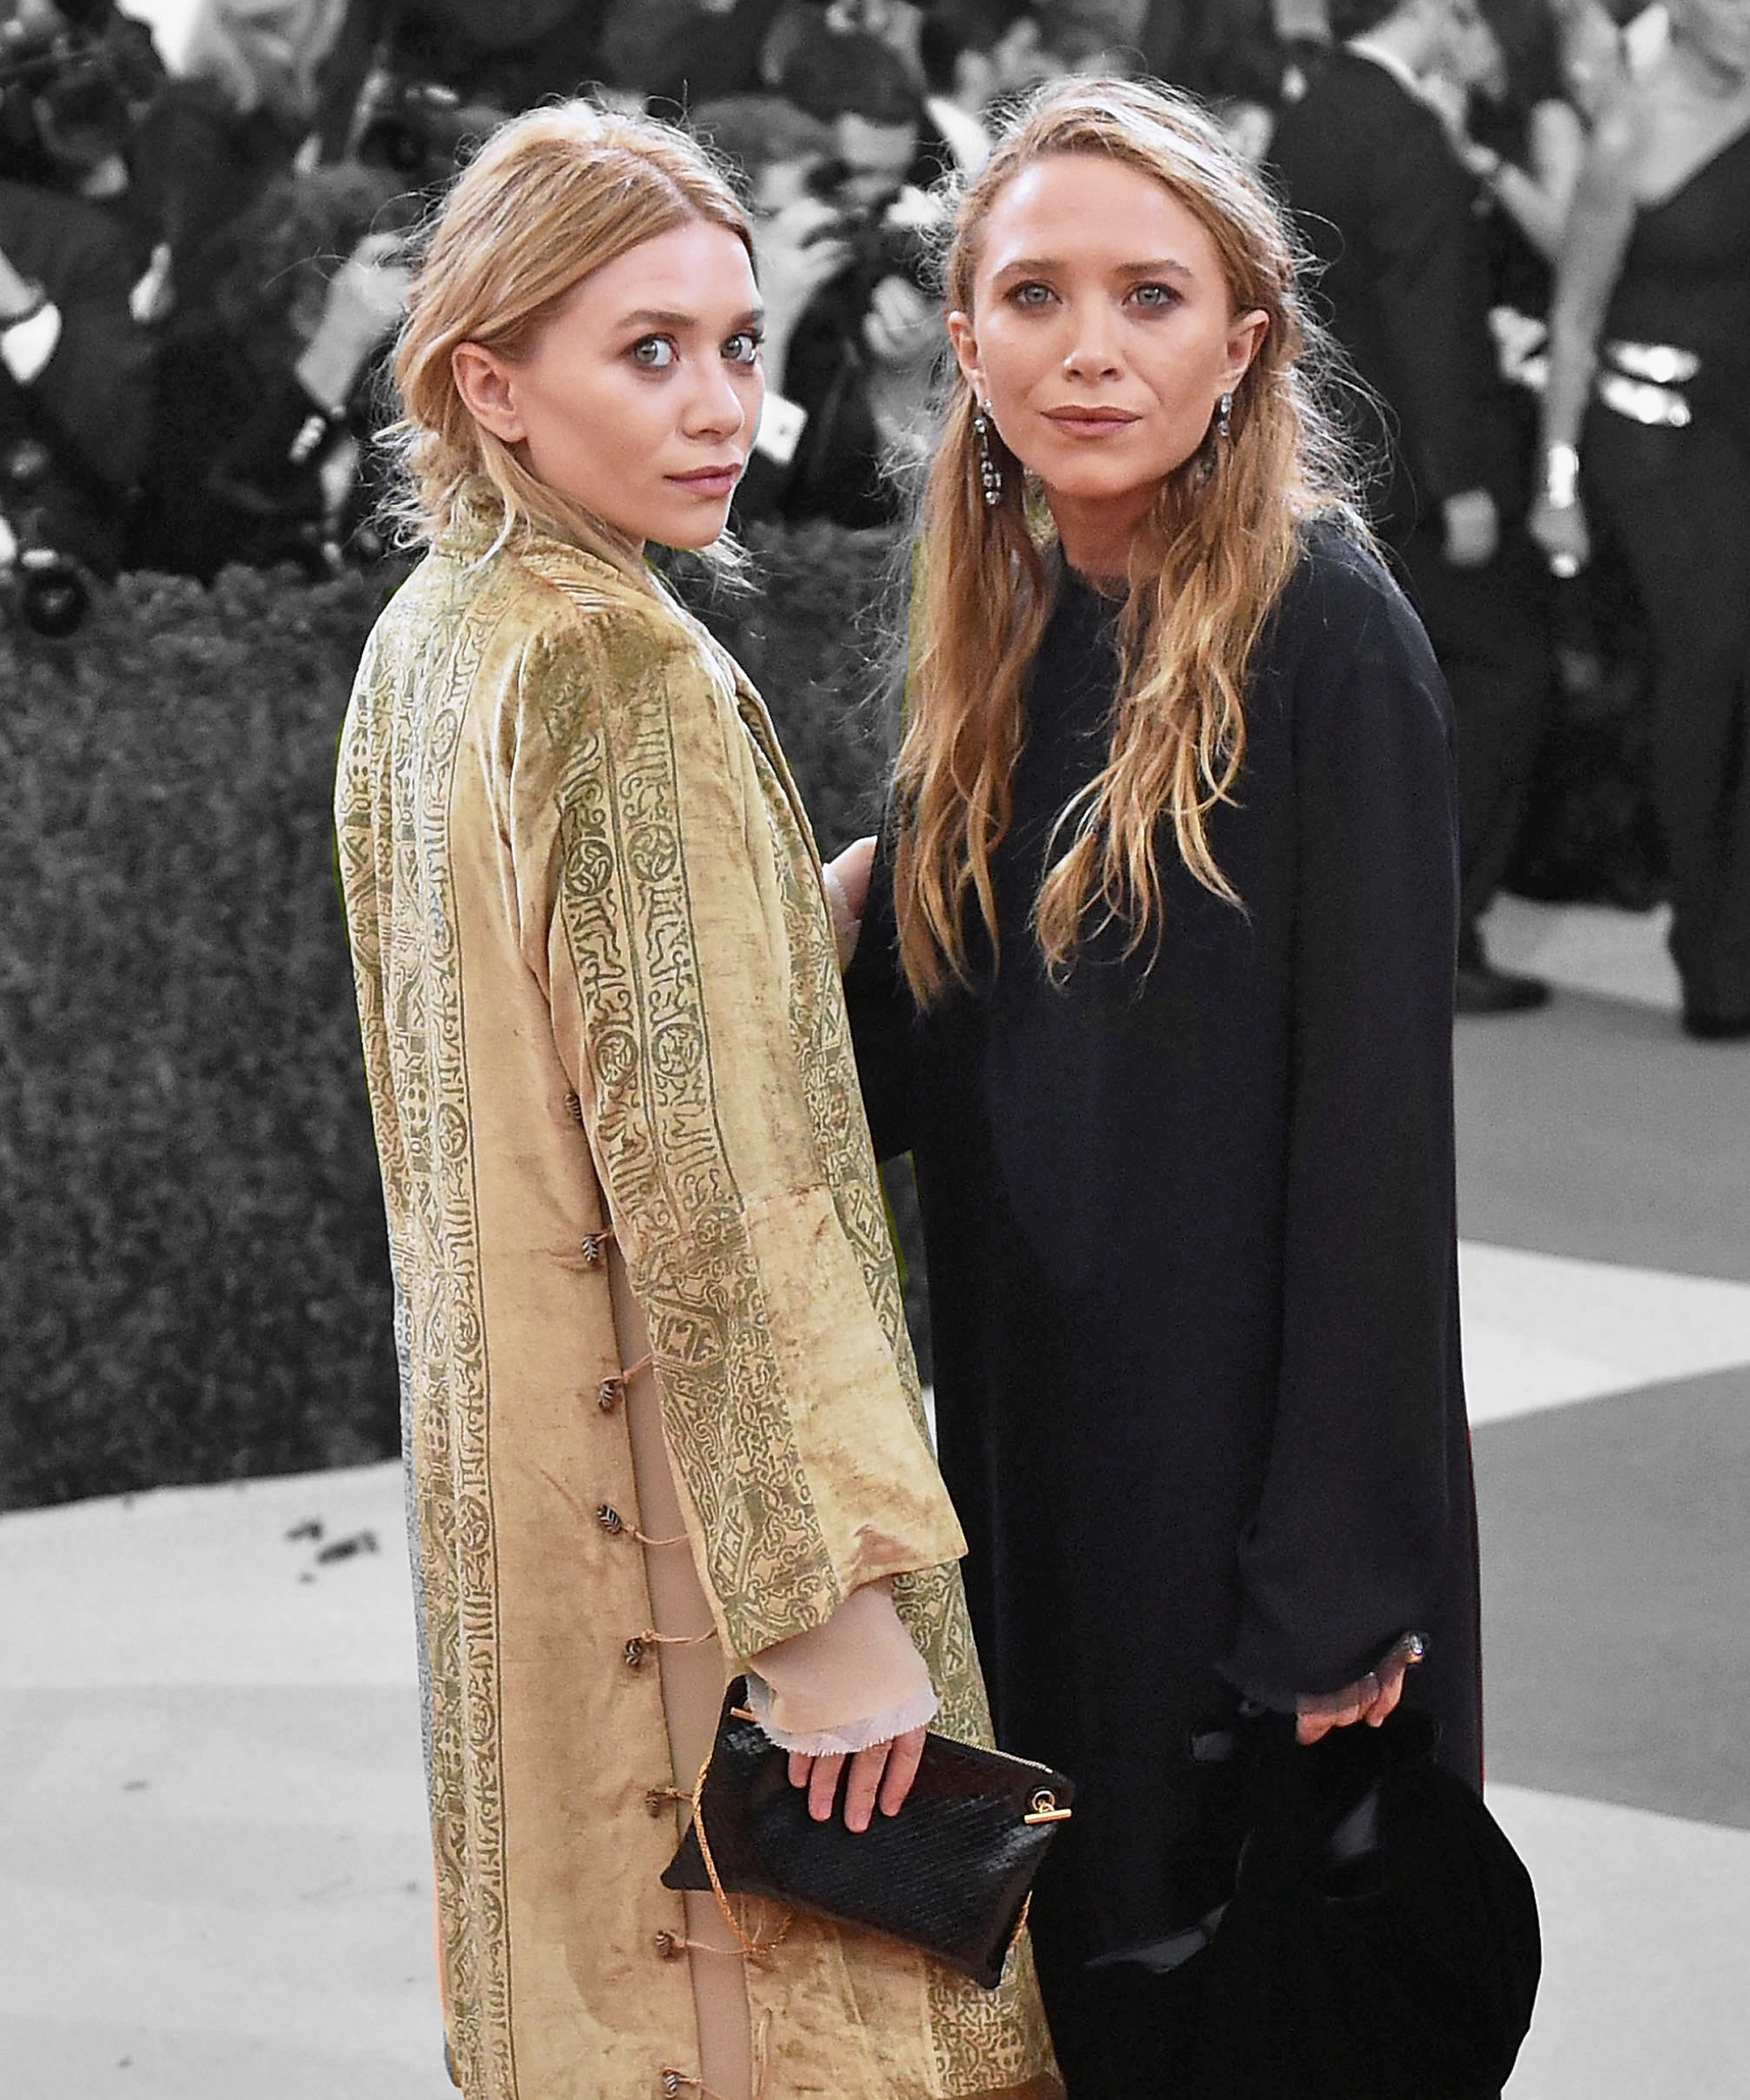 An Olsen Twin Sighting Is Like Seeing a Snow Leopard, So This Is a Special Day foto